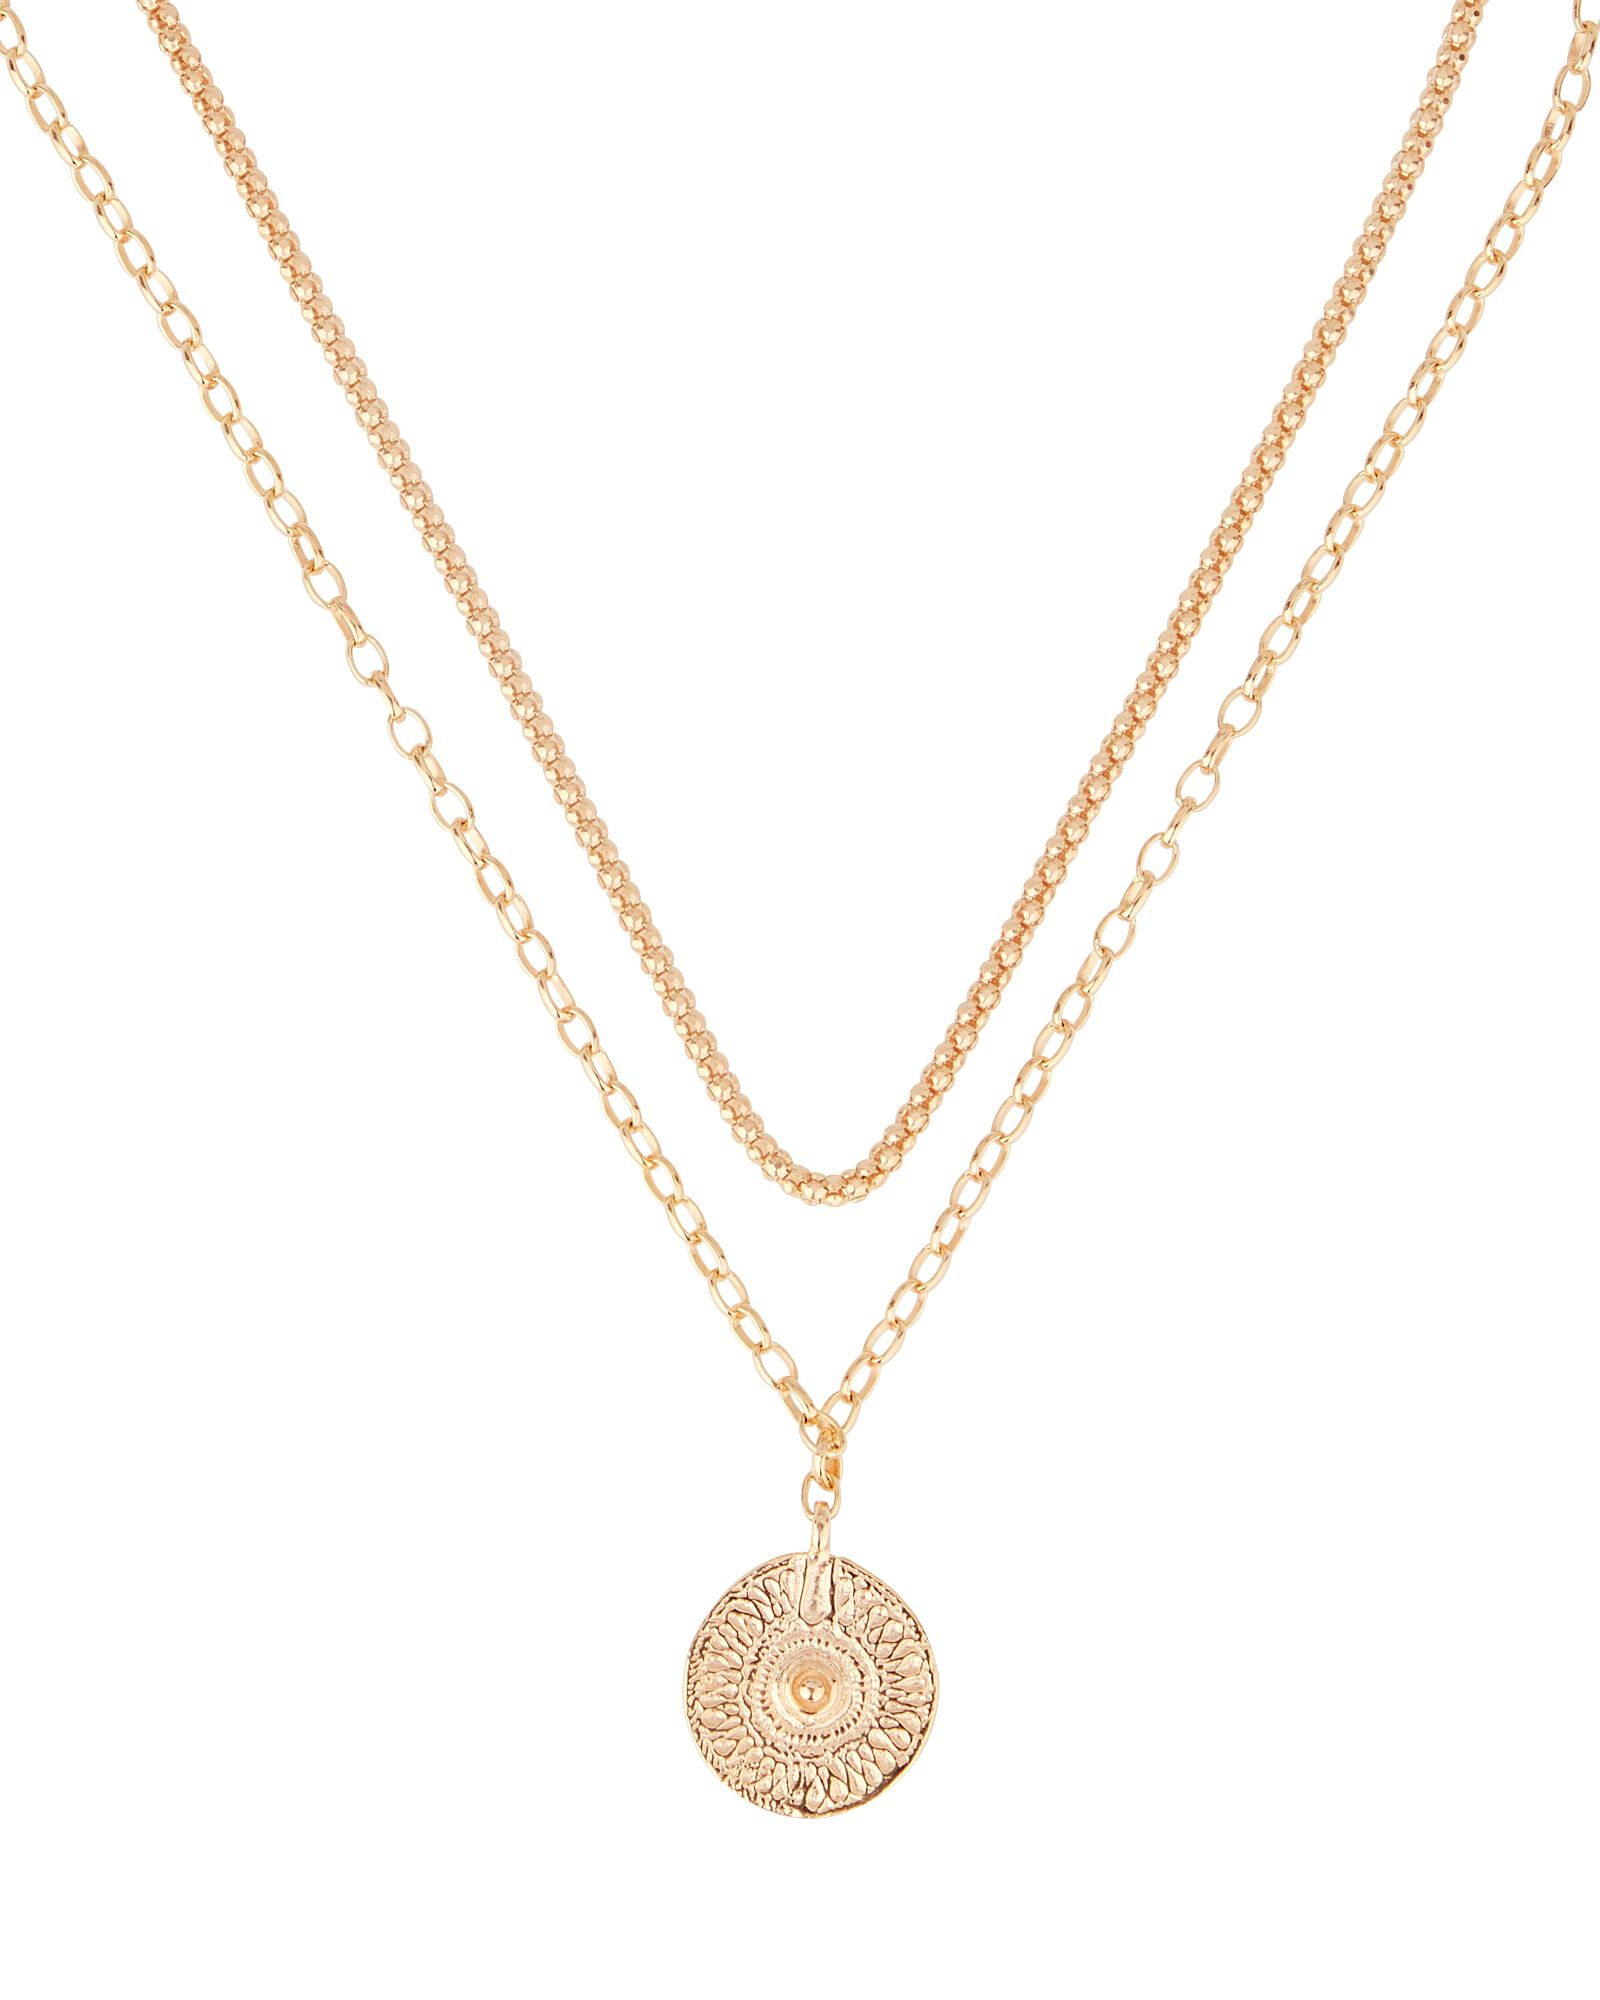 Odin Layered Coin Pendant Necklace, GOLD, hi-res